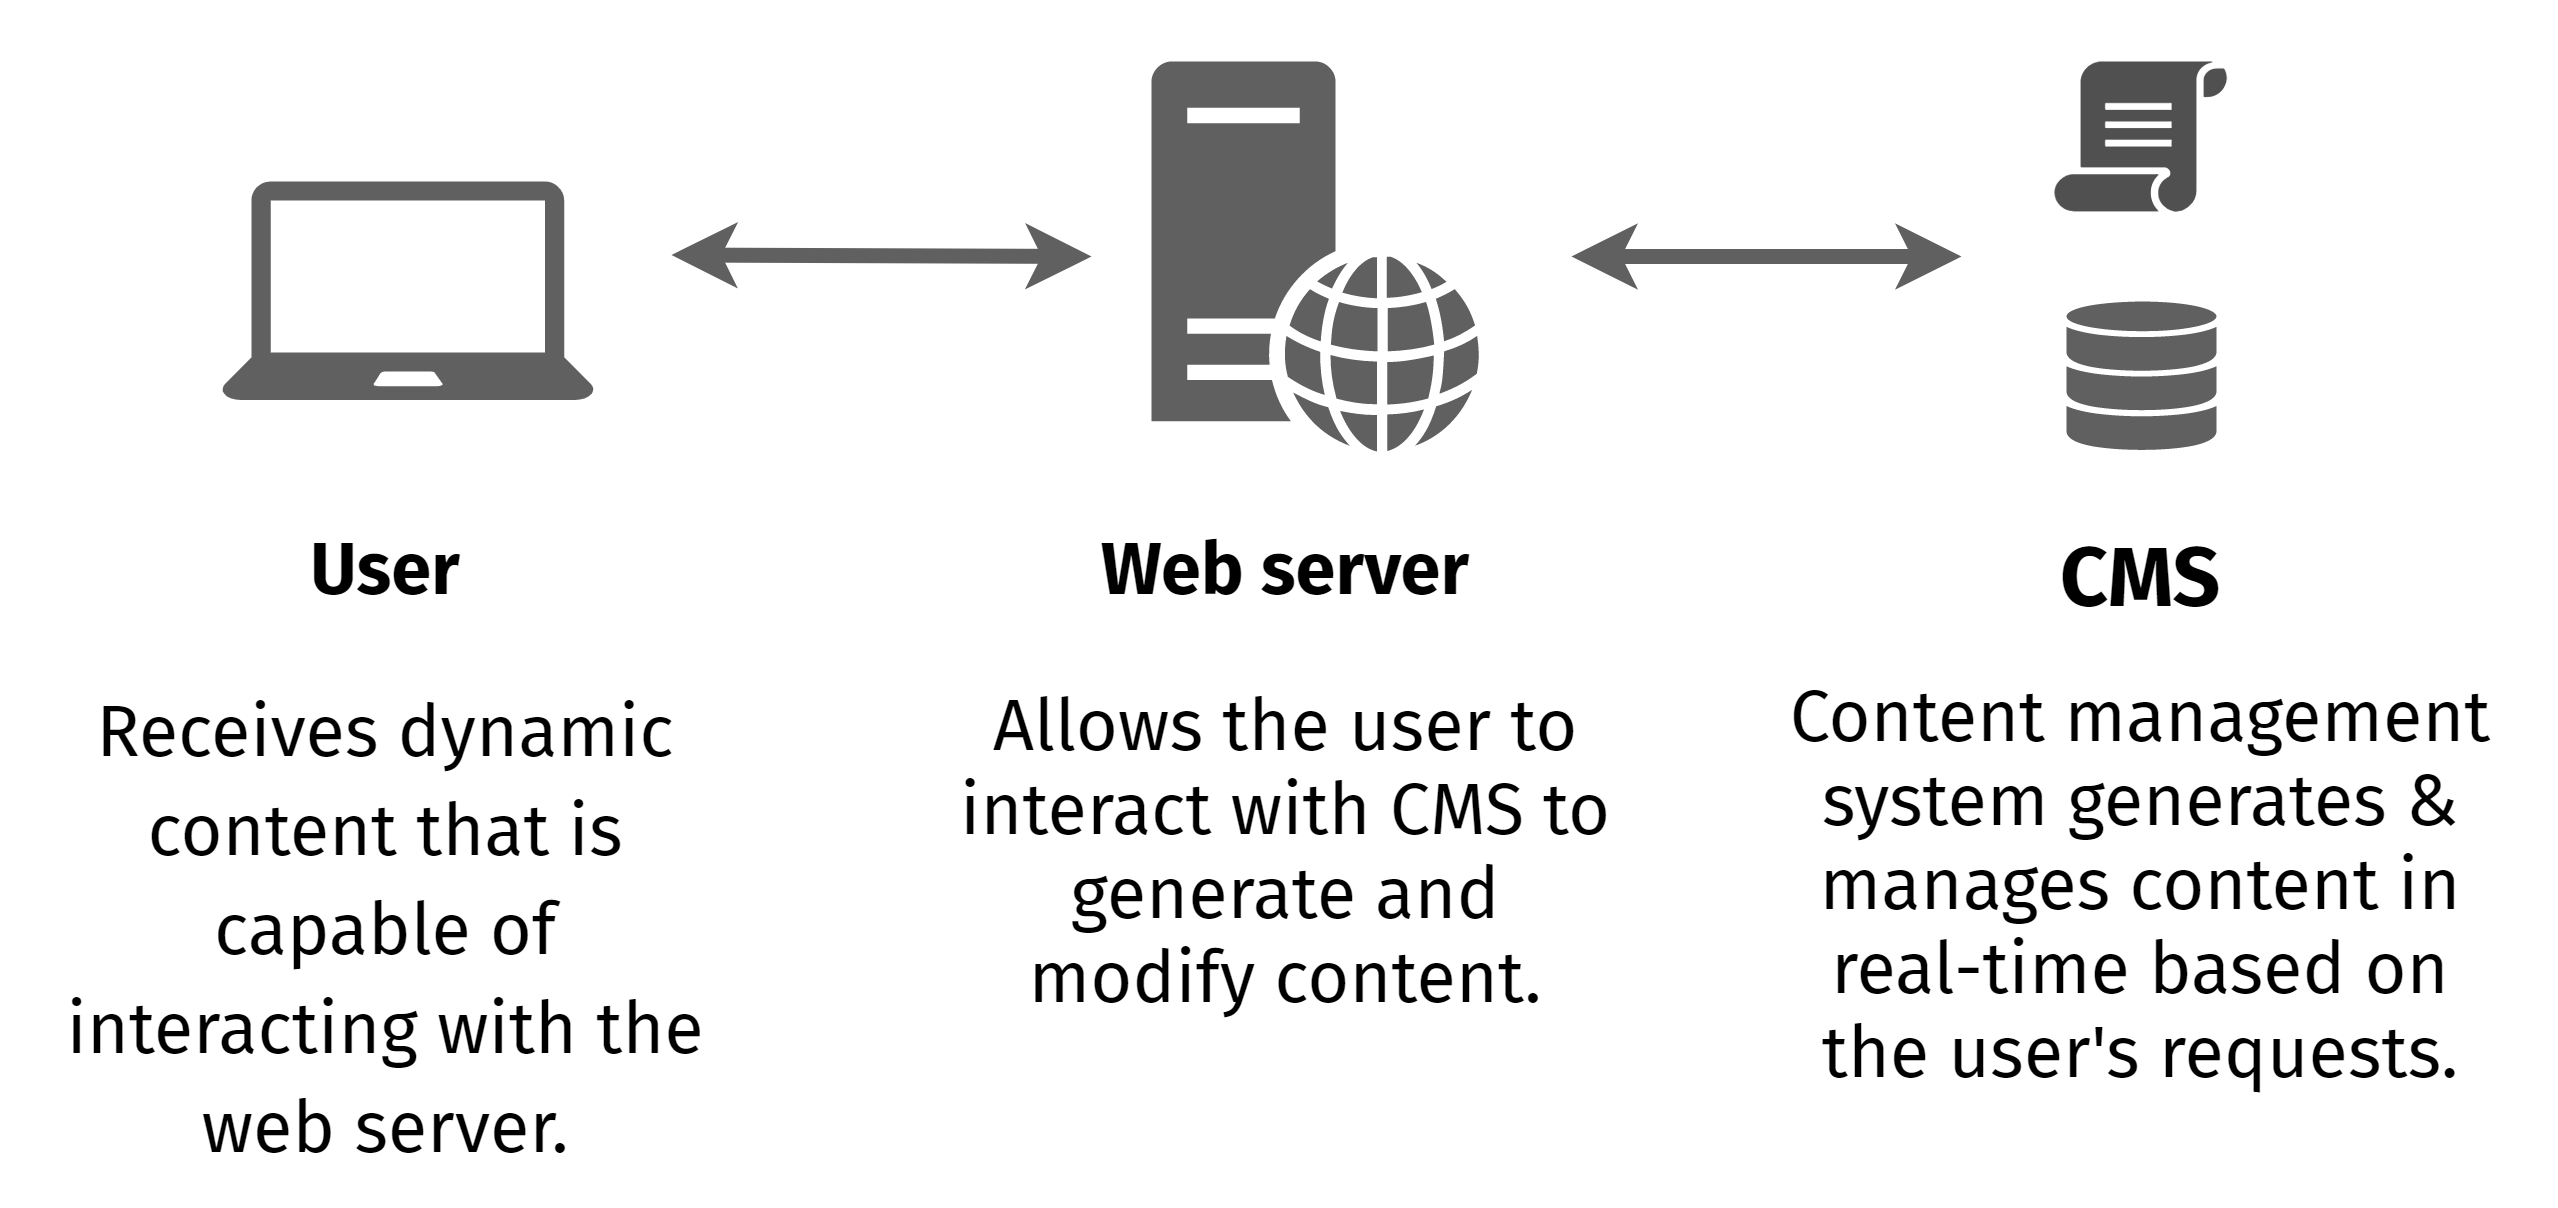 Logical diagram of dynamic website